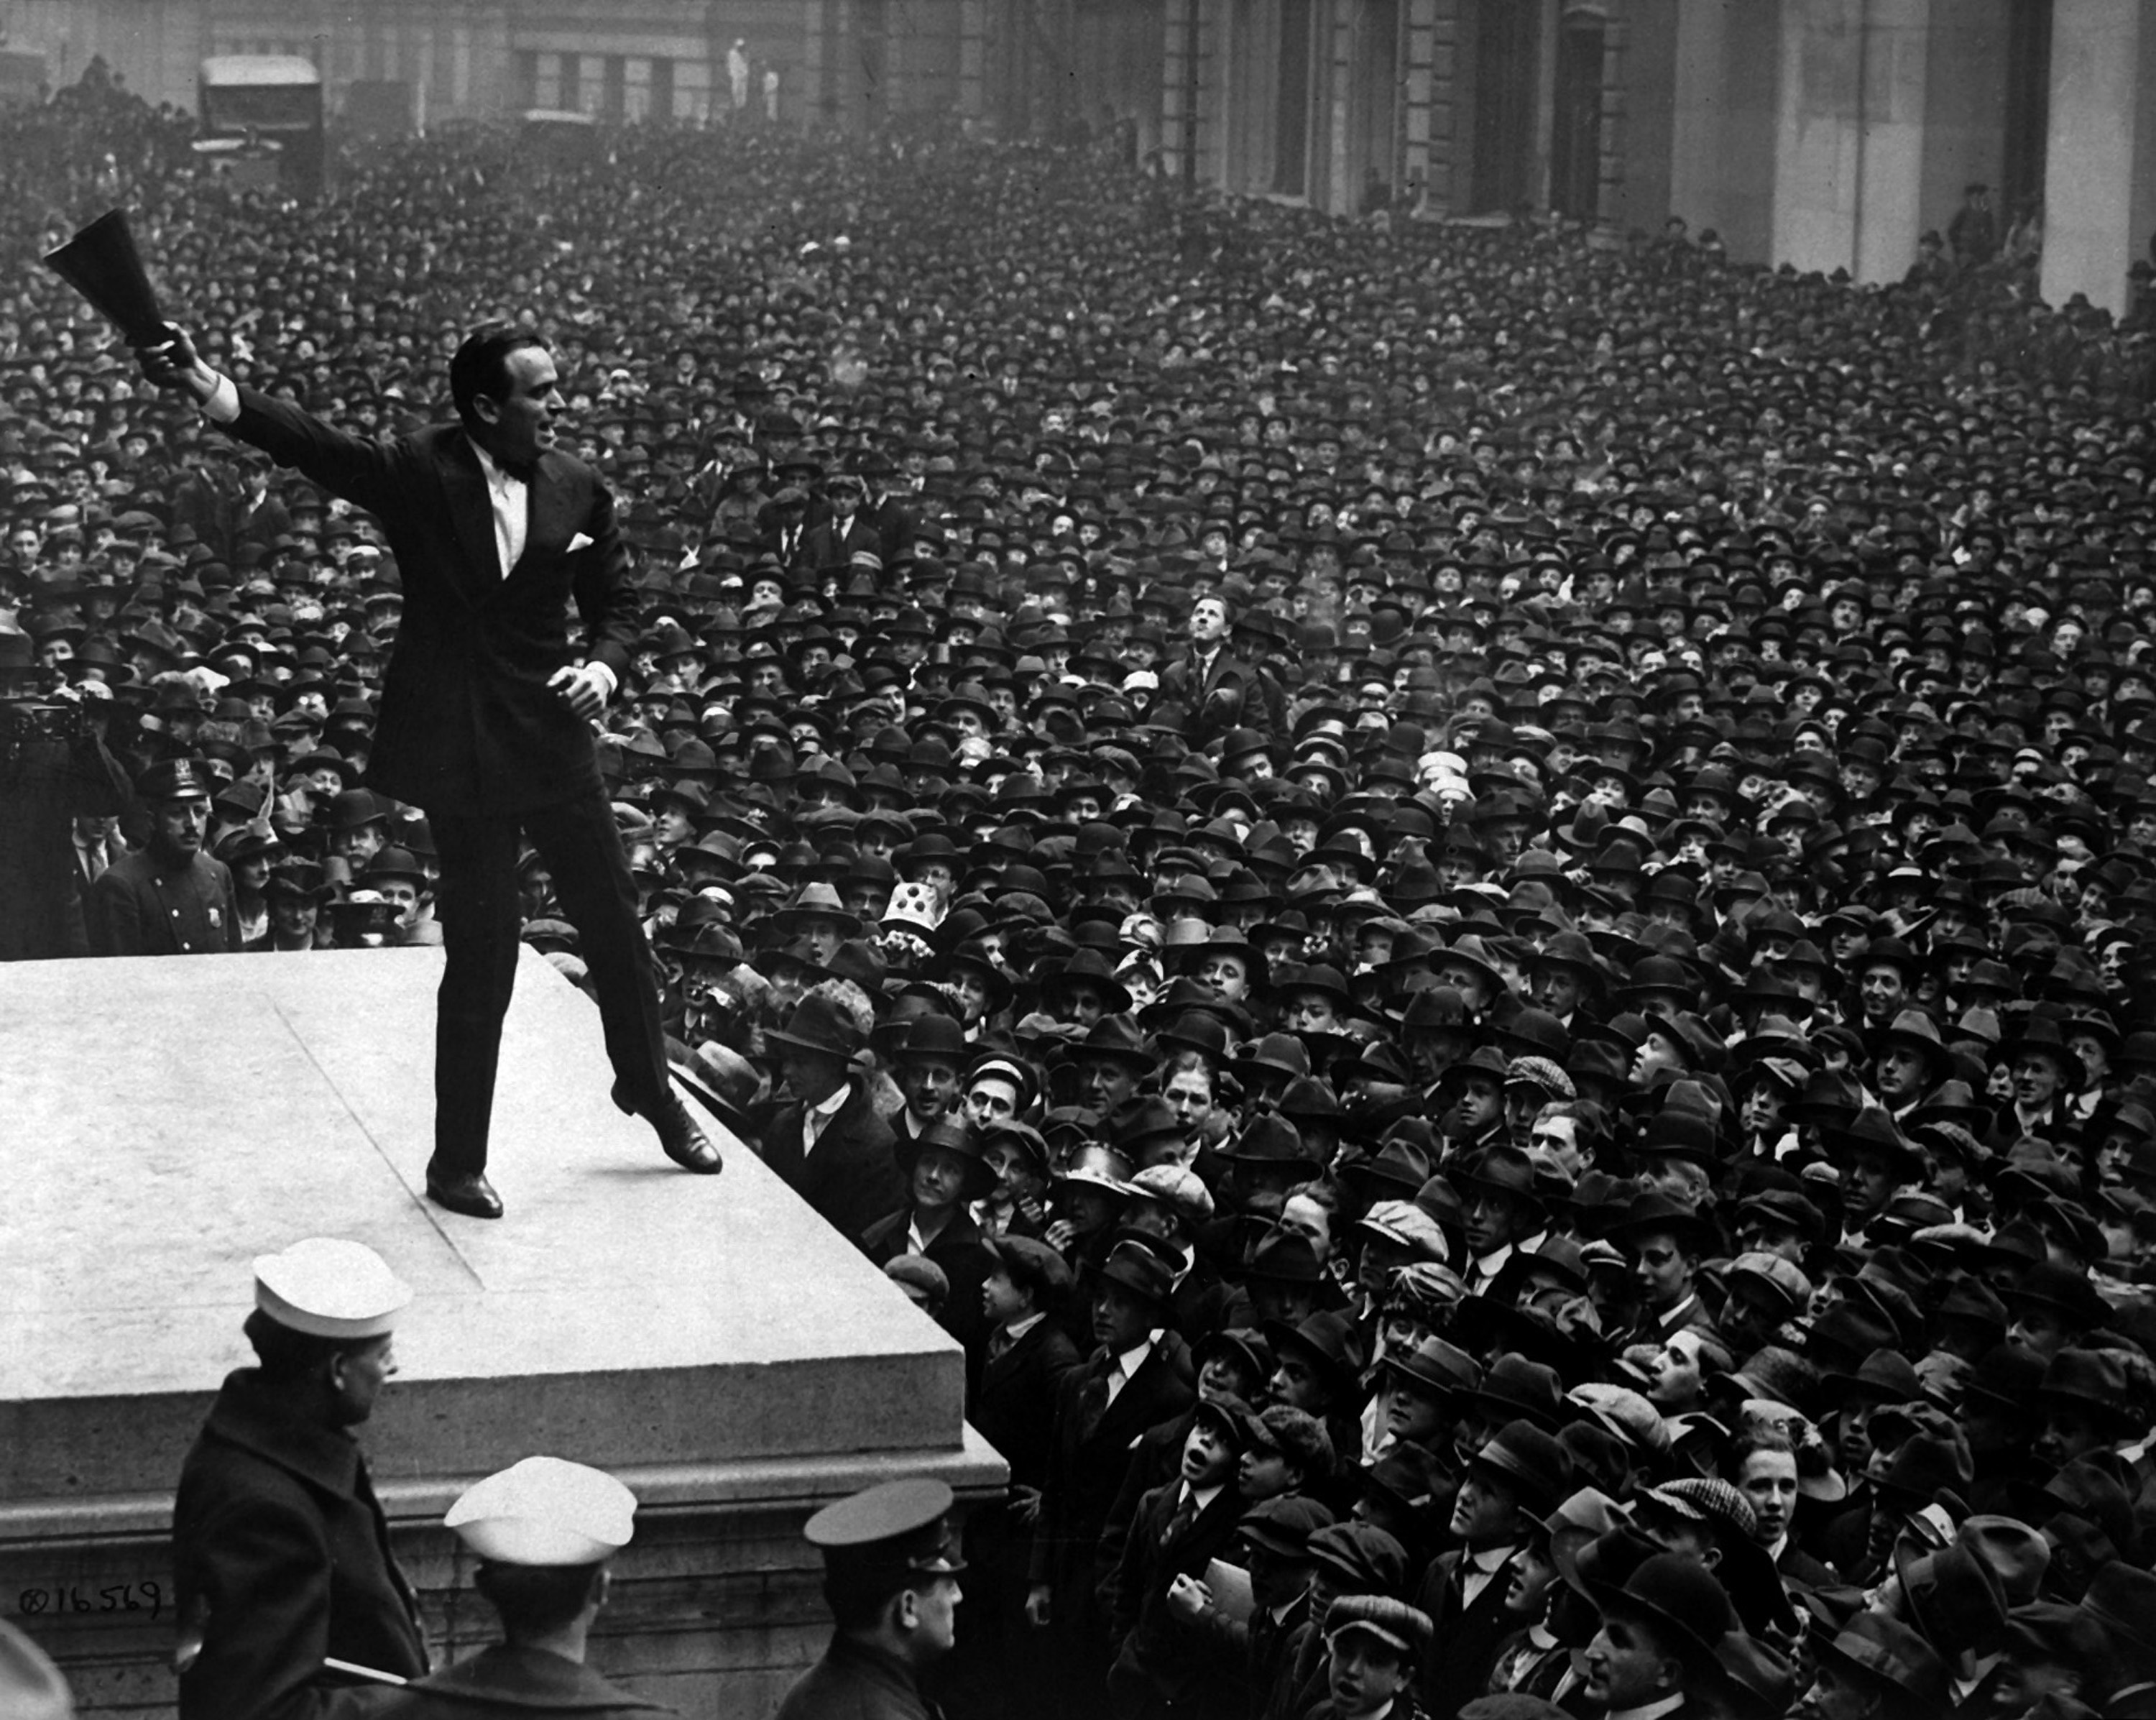 http://upload.wikimedia.org/wikipedia/commons/0/07/Douglas_Fairbanks_at_third_Liberty_Loan_rally_HD-SN-99-02174.JPEG